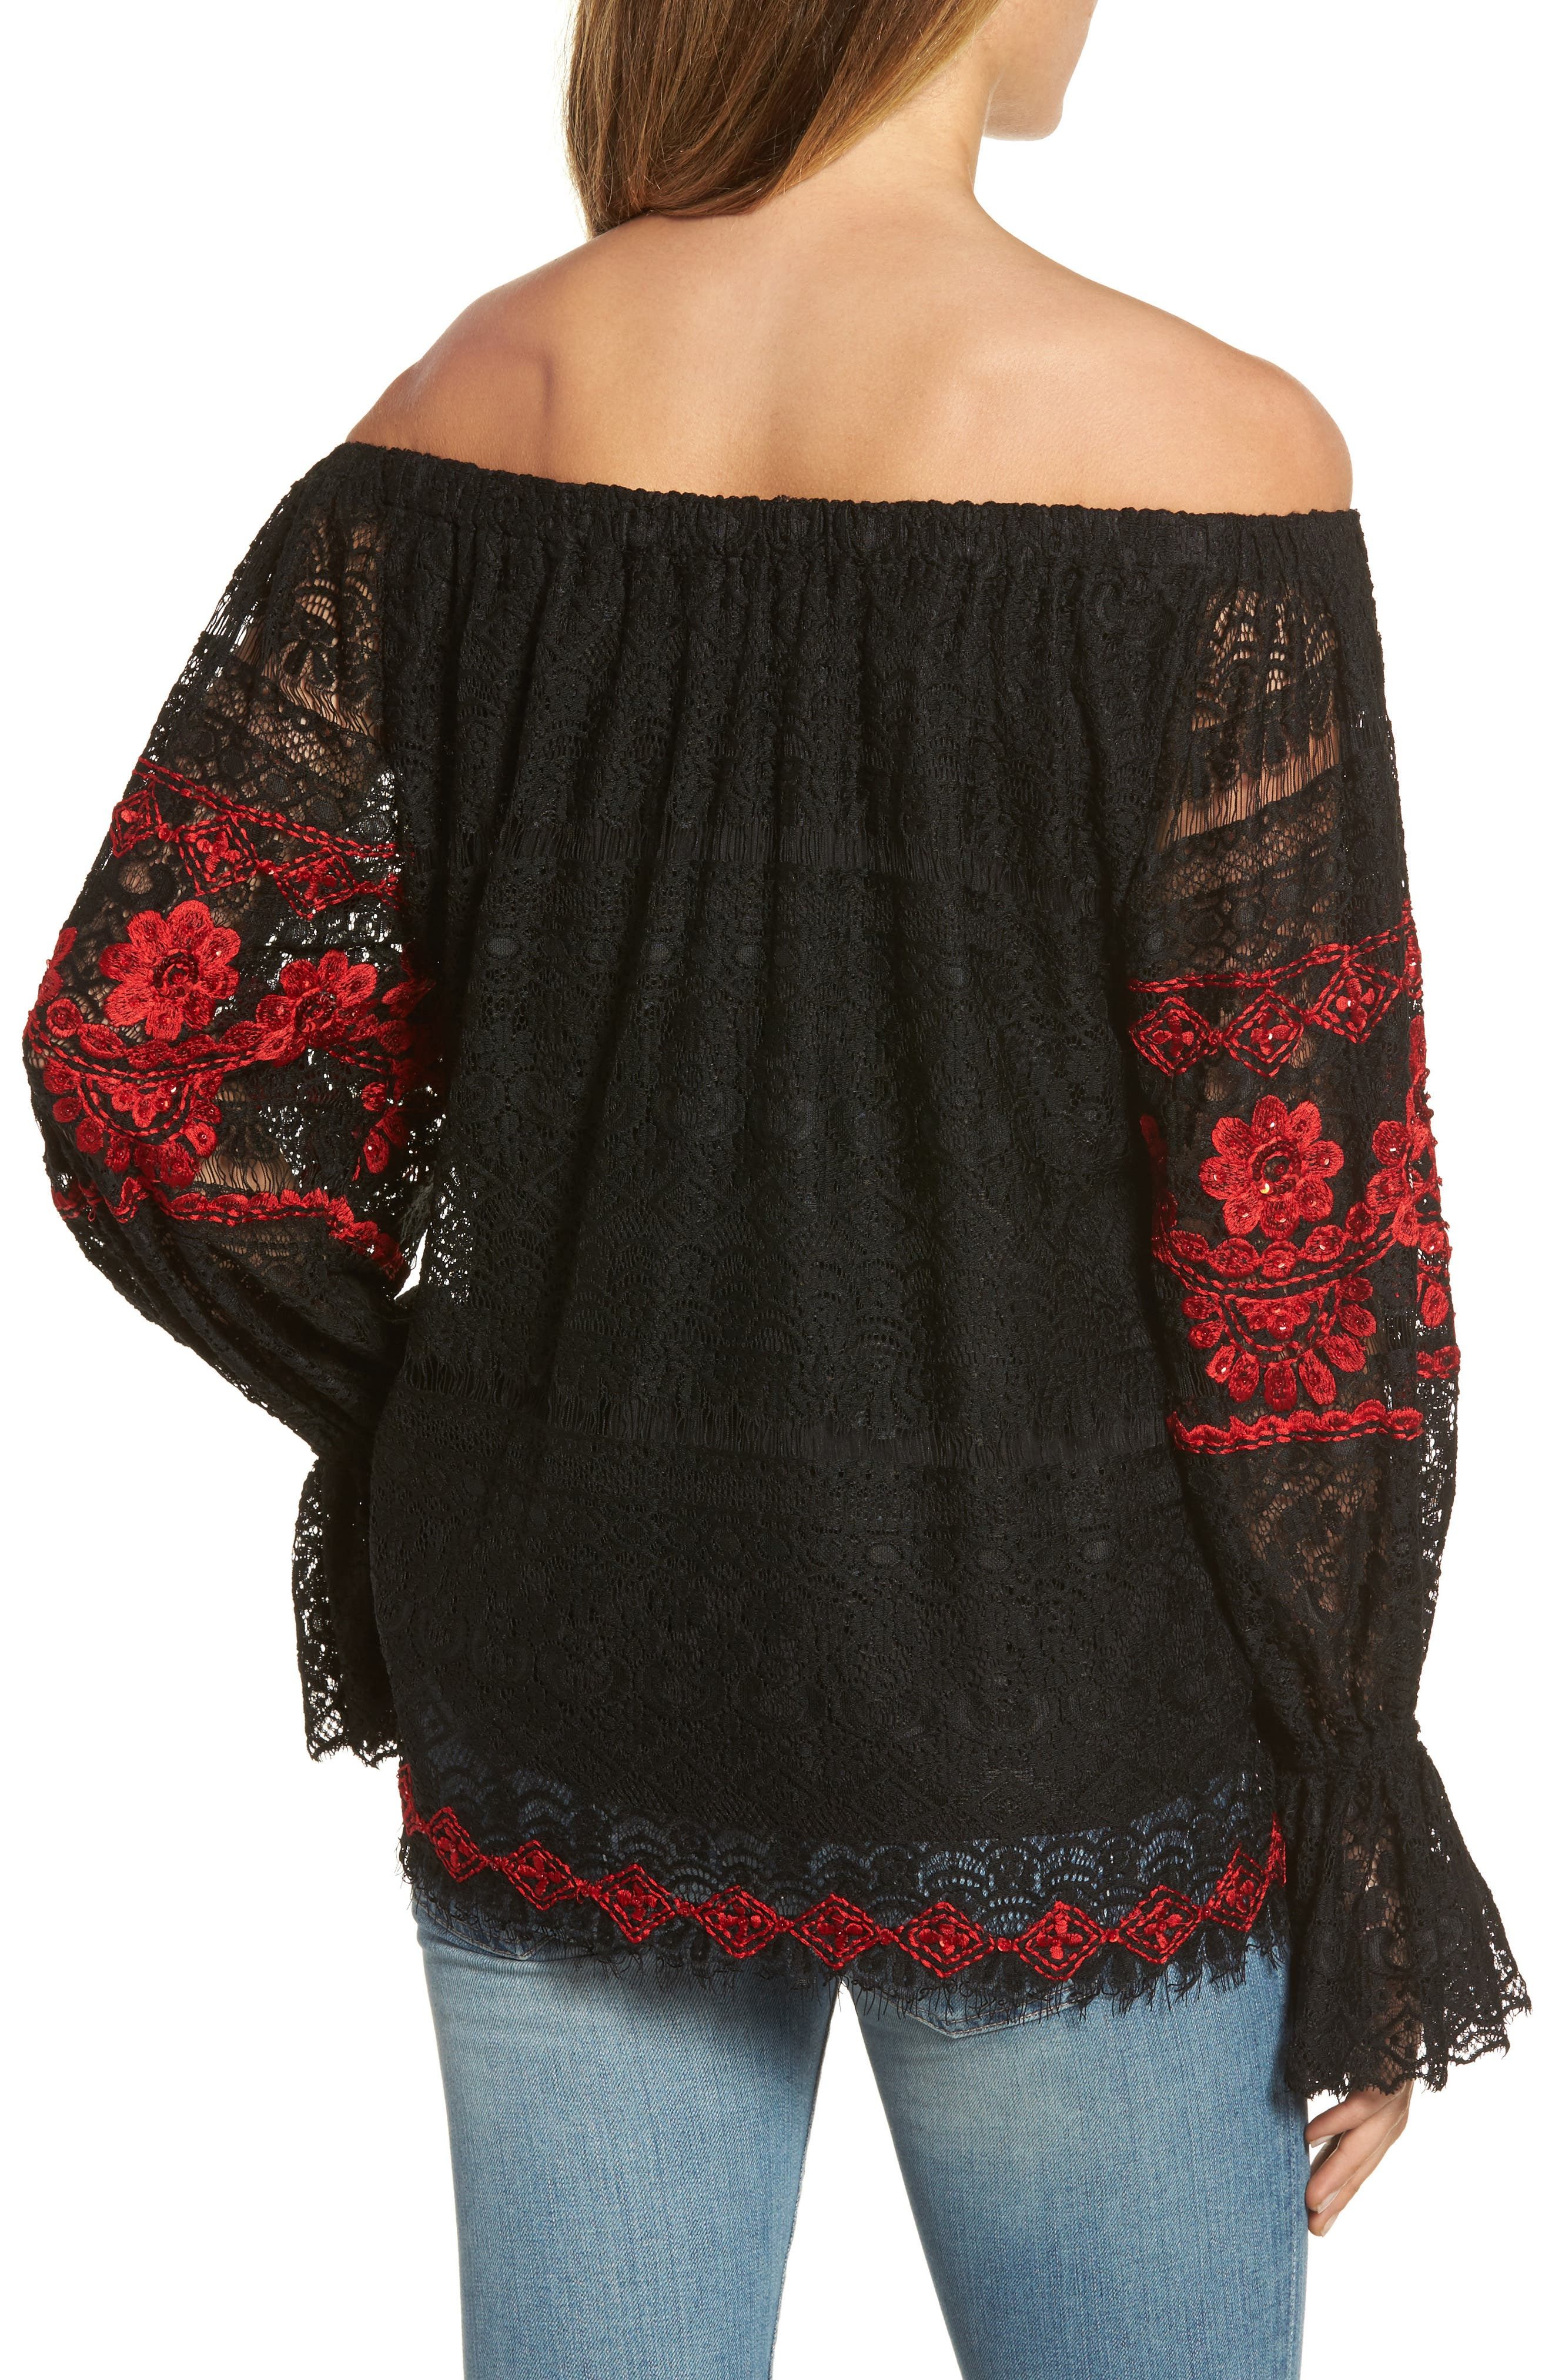 Clare Off the Shoulder Lace Top,                             Alternate thumbnail 2, color,                             001